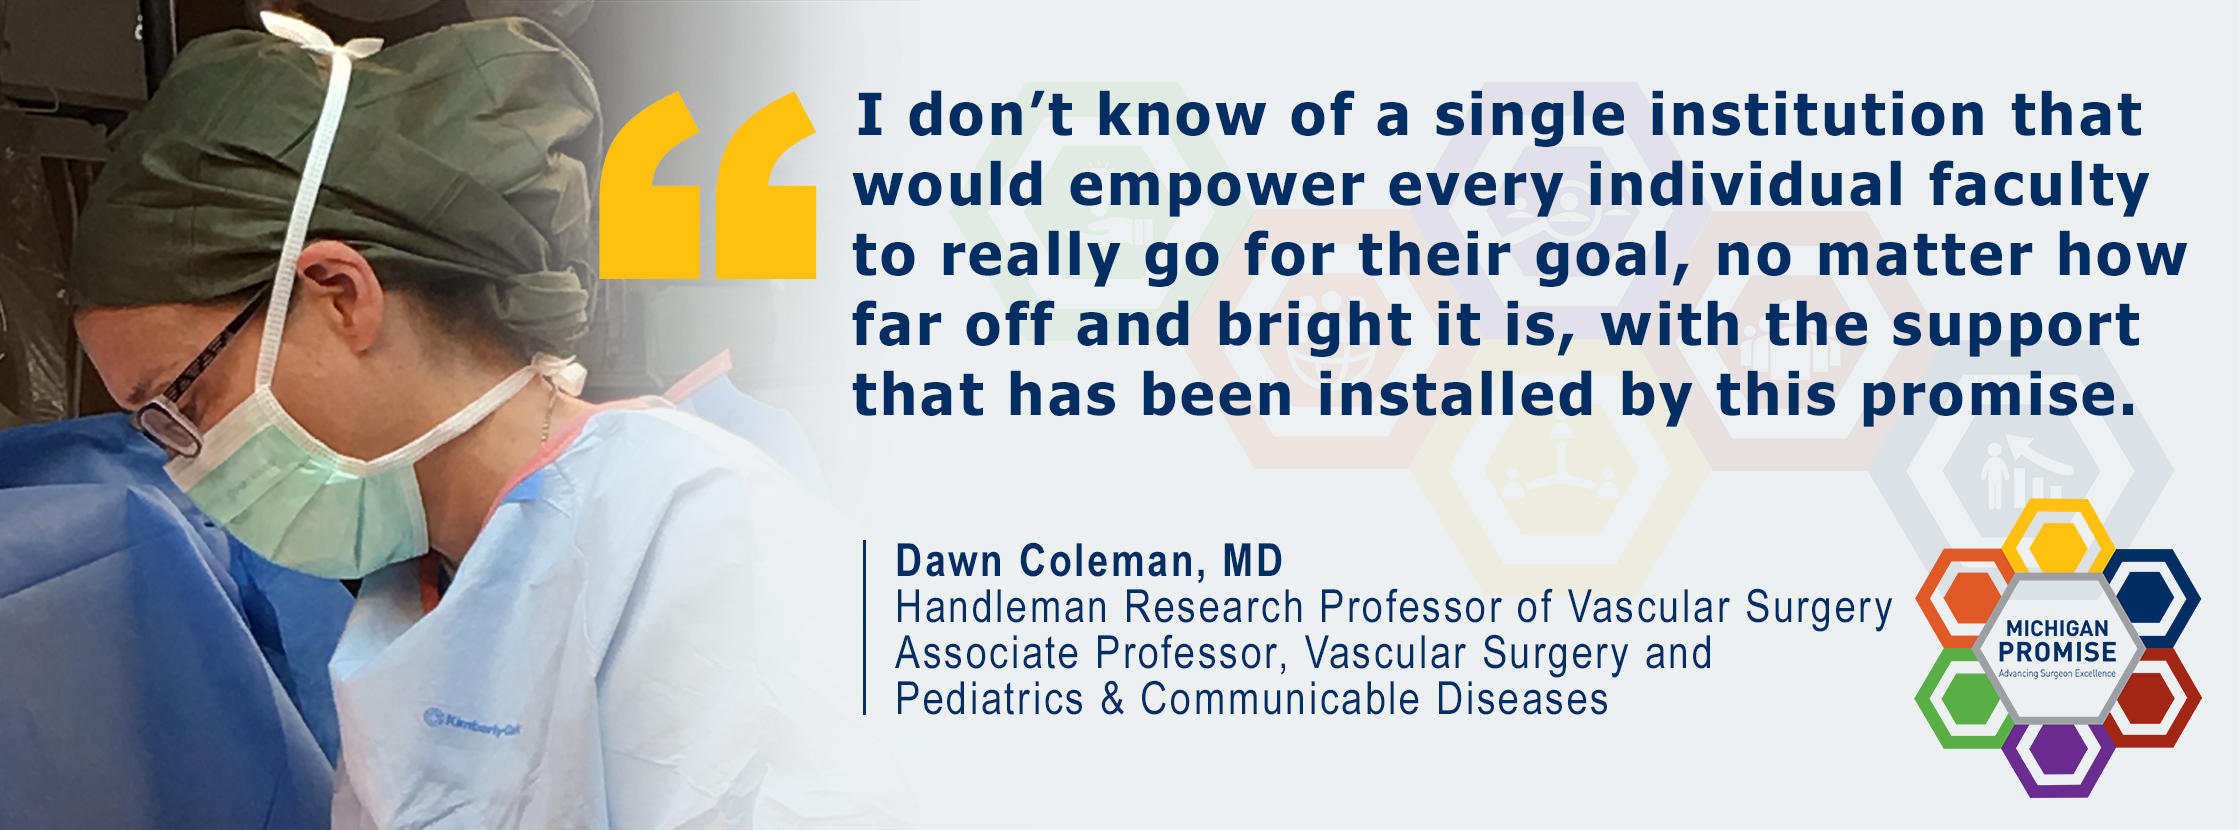 """""""I don't know of a single institution that would empower every individual faculty to really go for their goal, no matter how far off and bright it is, with the support that has been installed by this promise."""" Dawn Coleman, MD"""